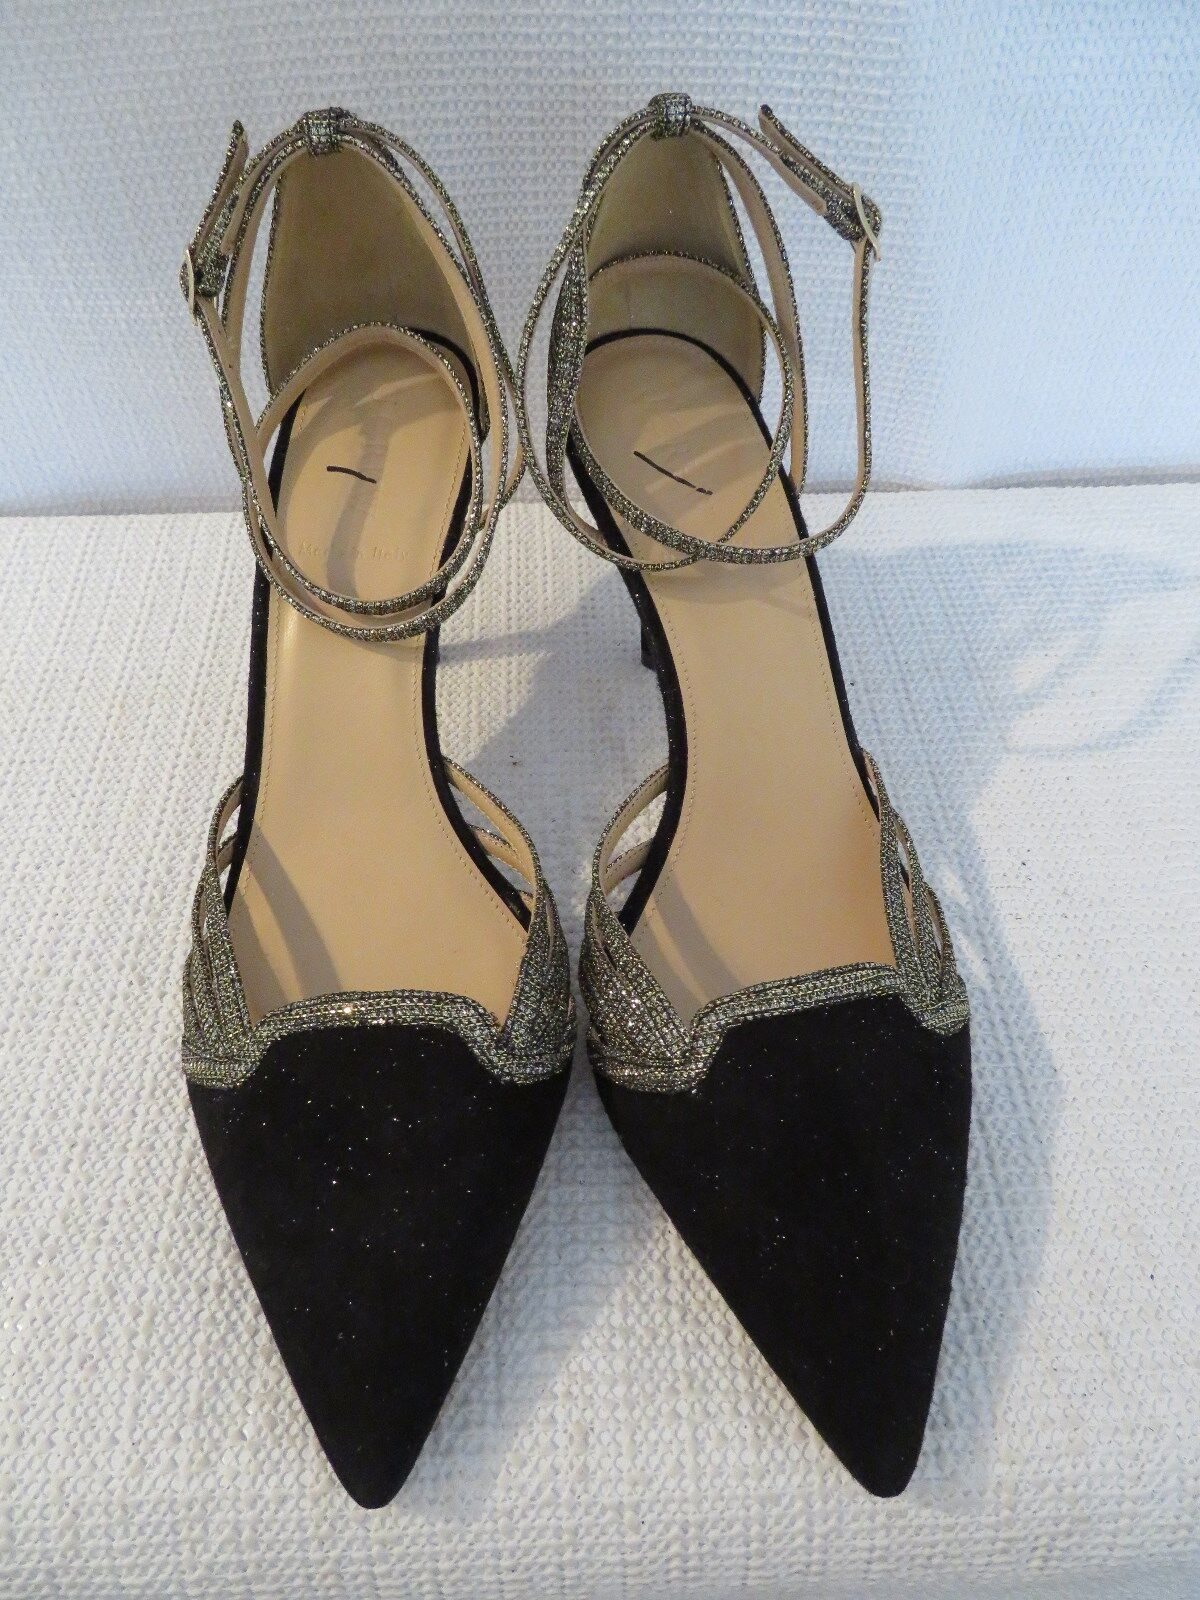 NEW J.CREW COLLETTE ANKLE-WRAP IN SUEDE PUMPS IN BLACK F8481, SZ 9,  278